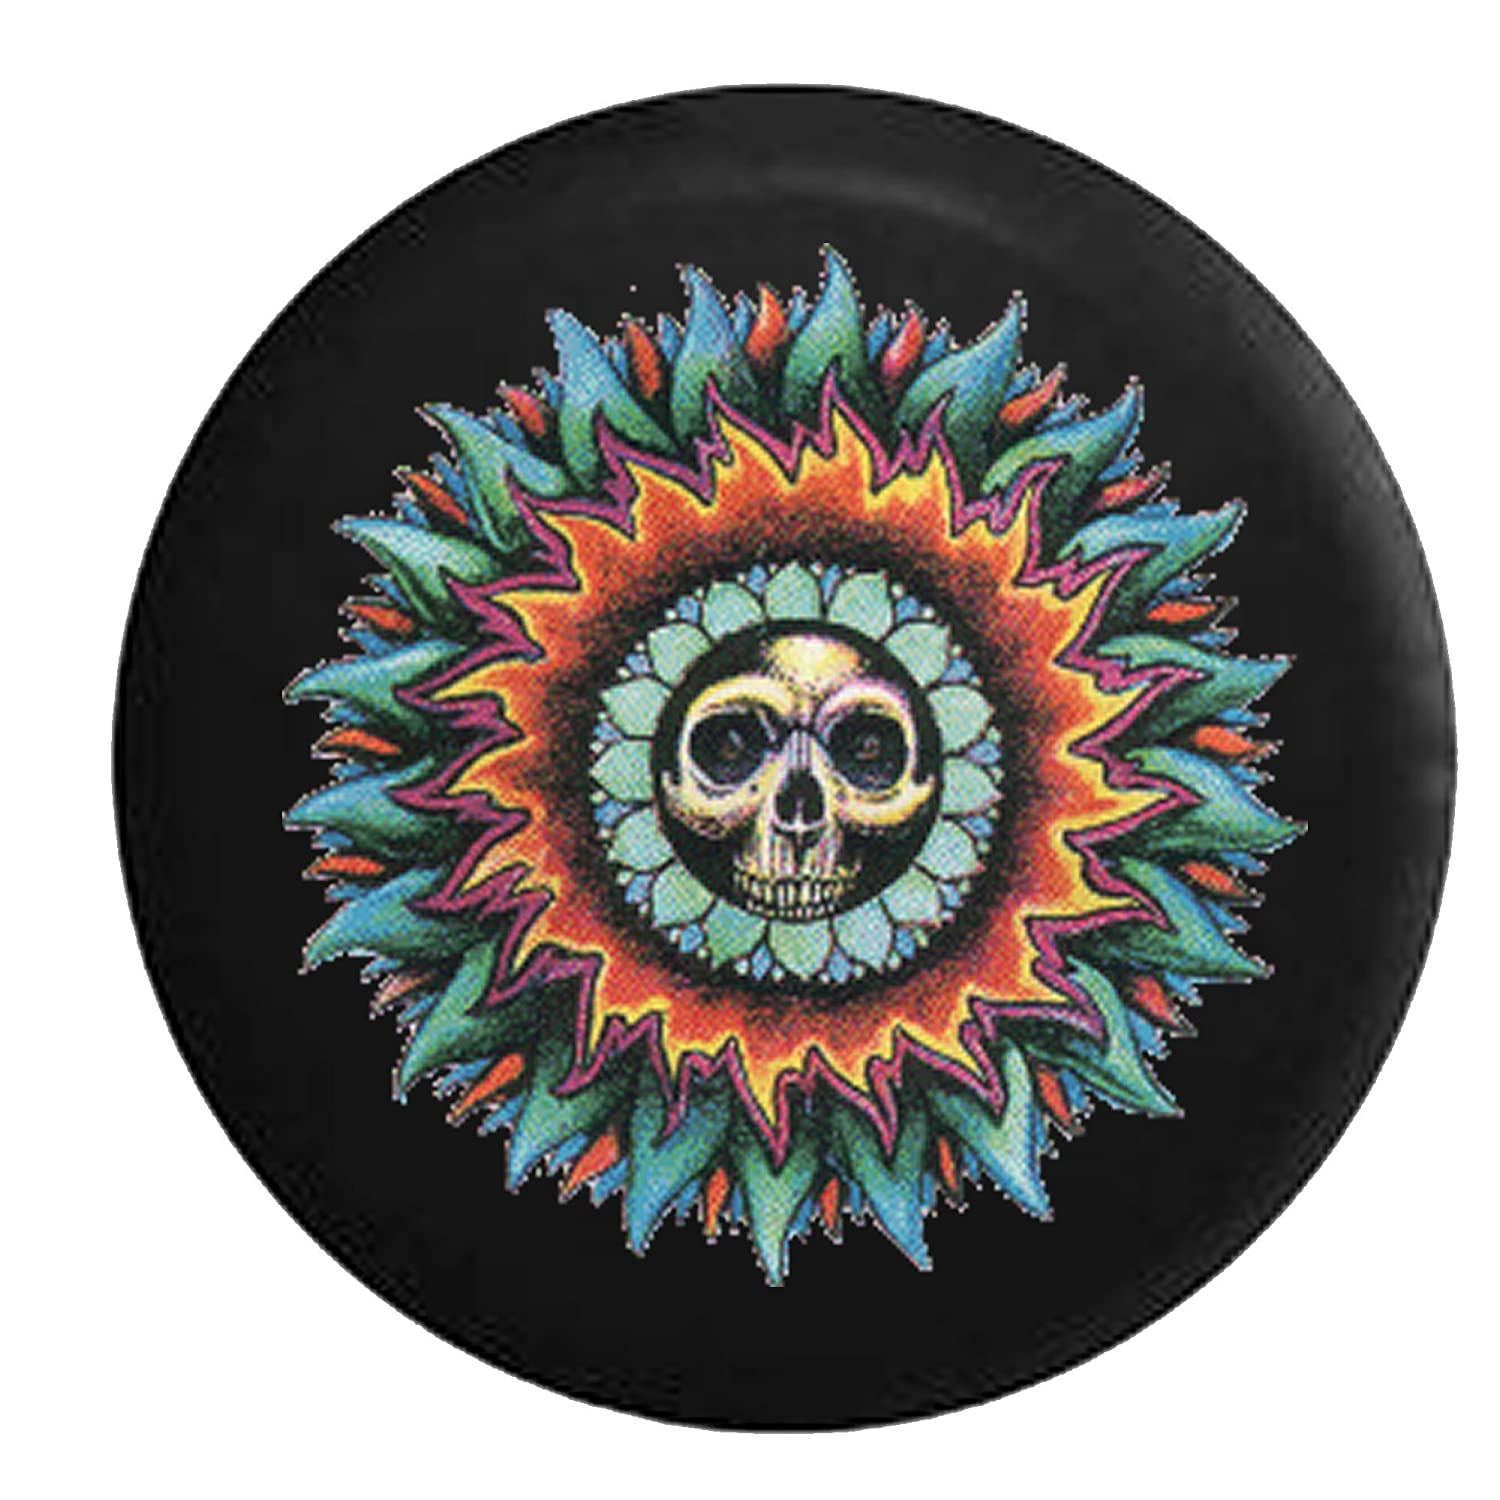 Vintage Skull In the Sun Spare Jeep Wrangler Camper SUV Tire Cover 33 in